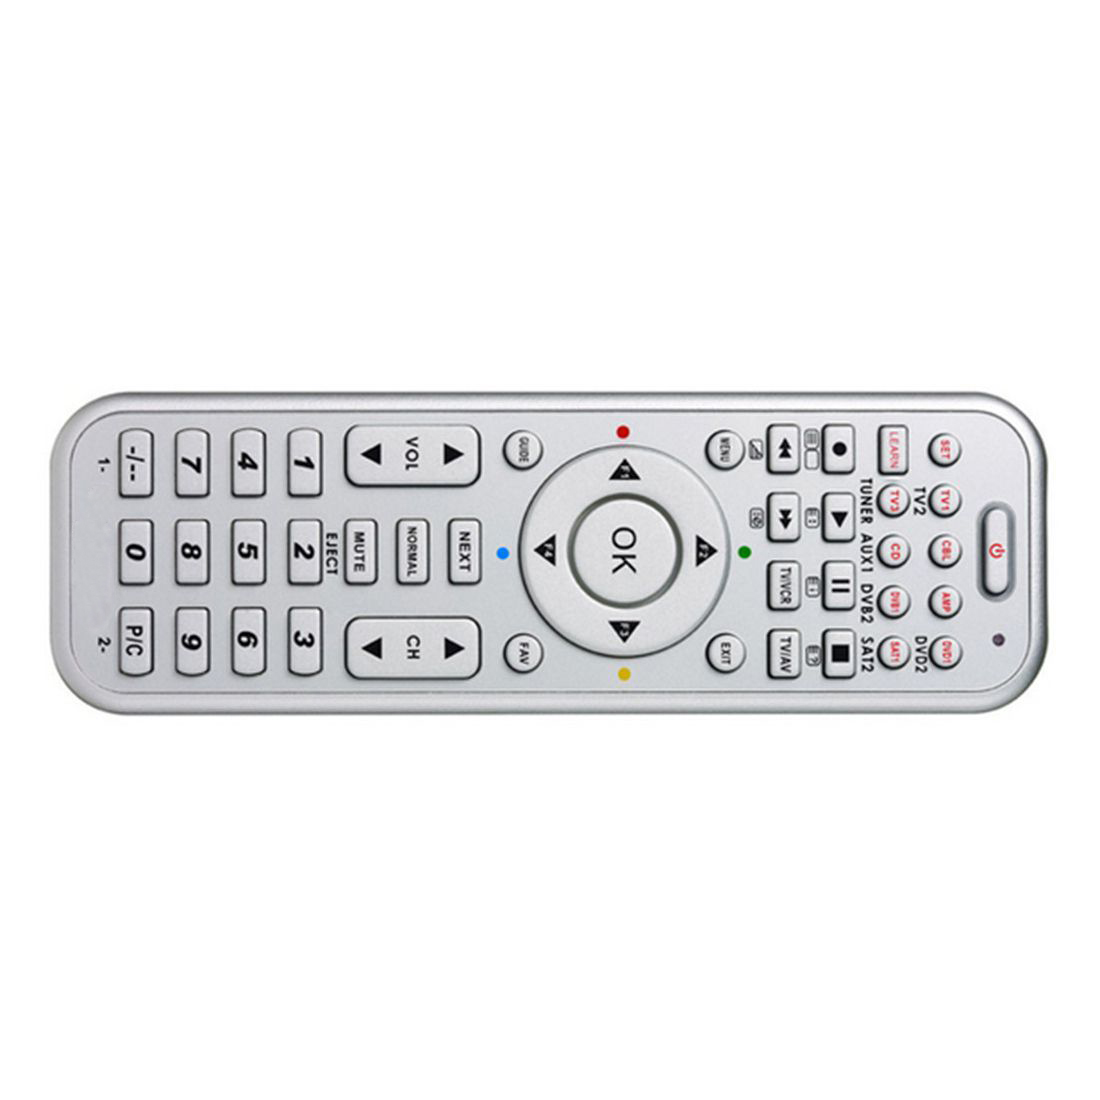 Top Deals RM-L14 Universal Smart Remote Control With Learn Function For TV CBL DVD SAT DVB CONTROLLER copy